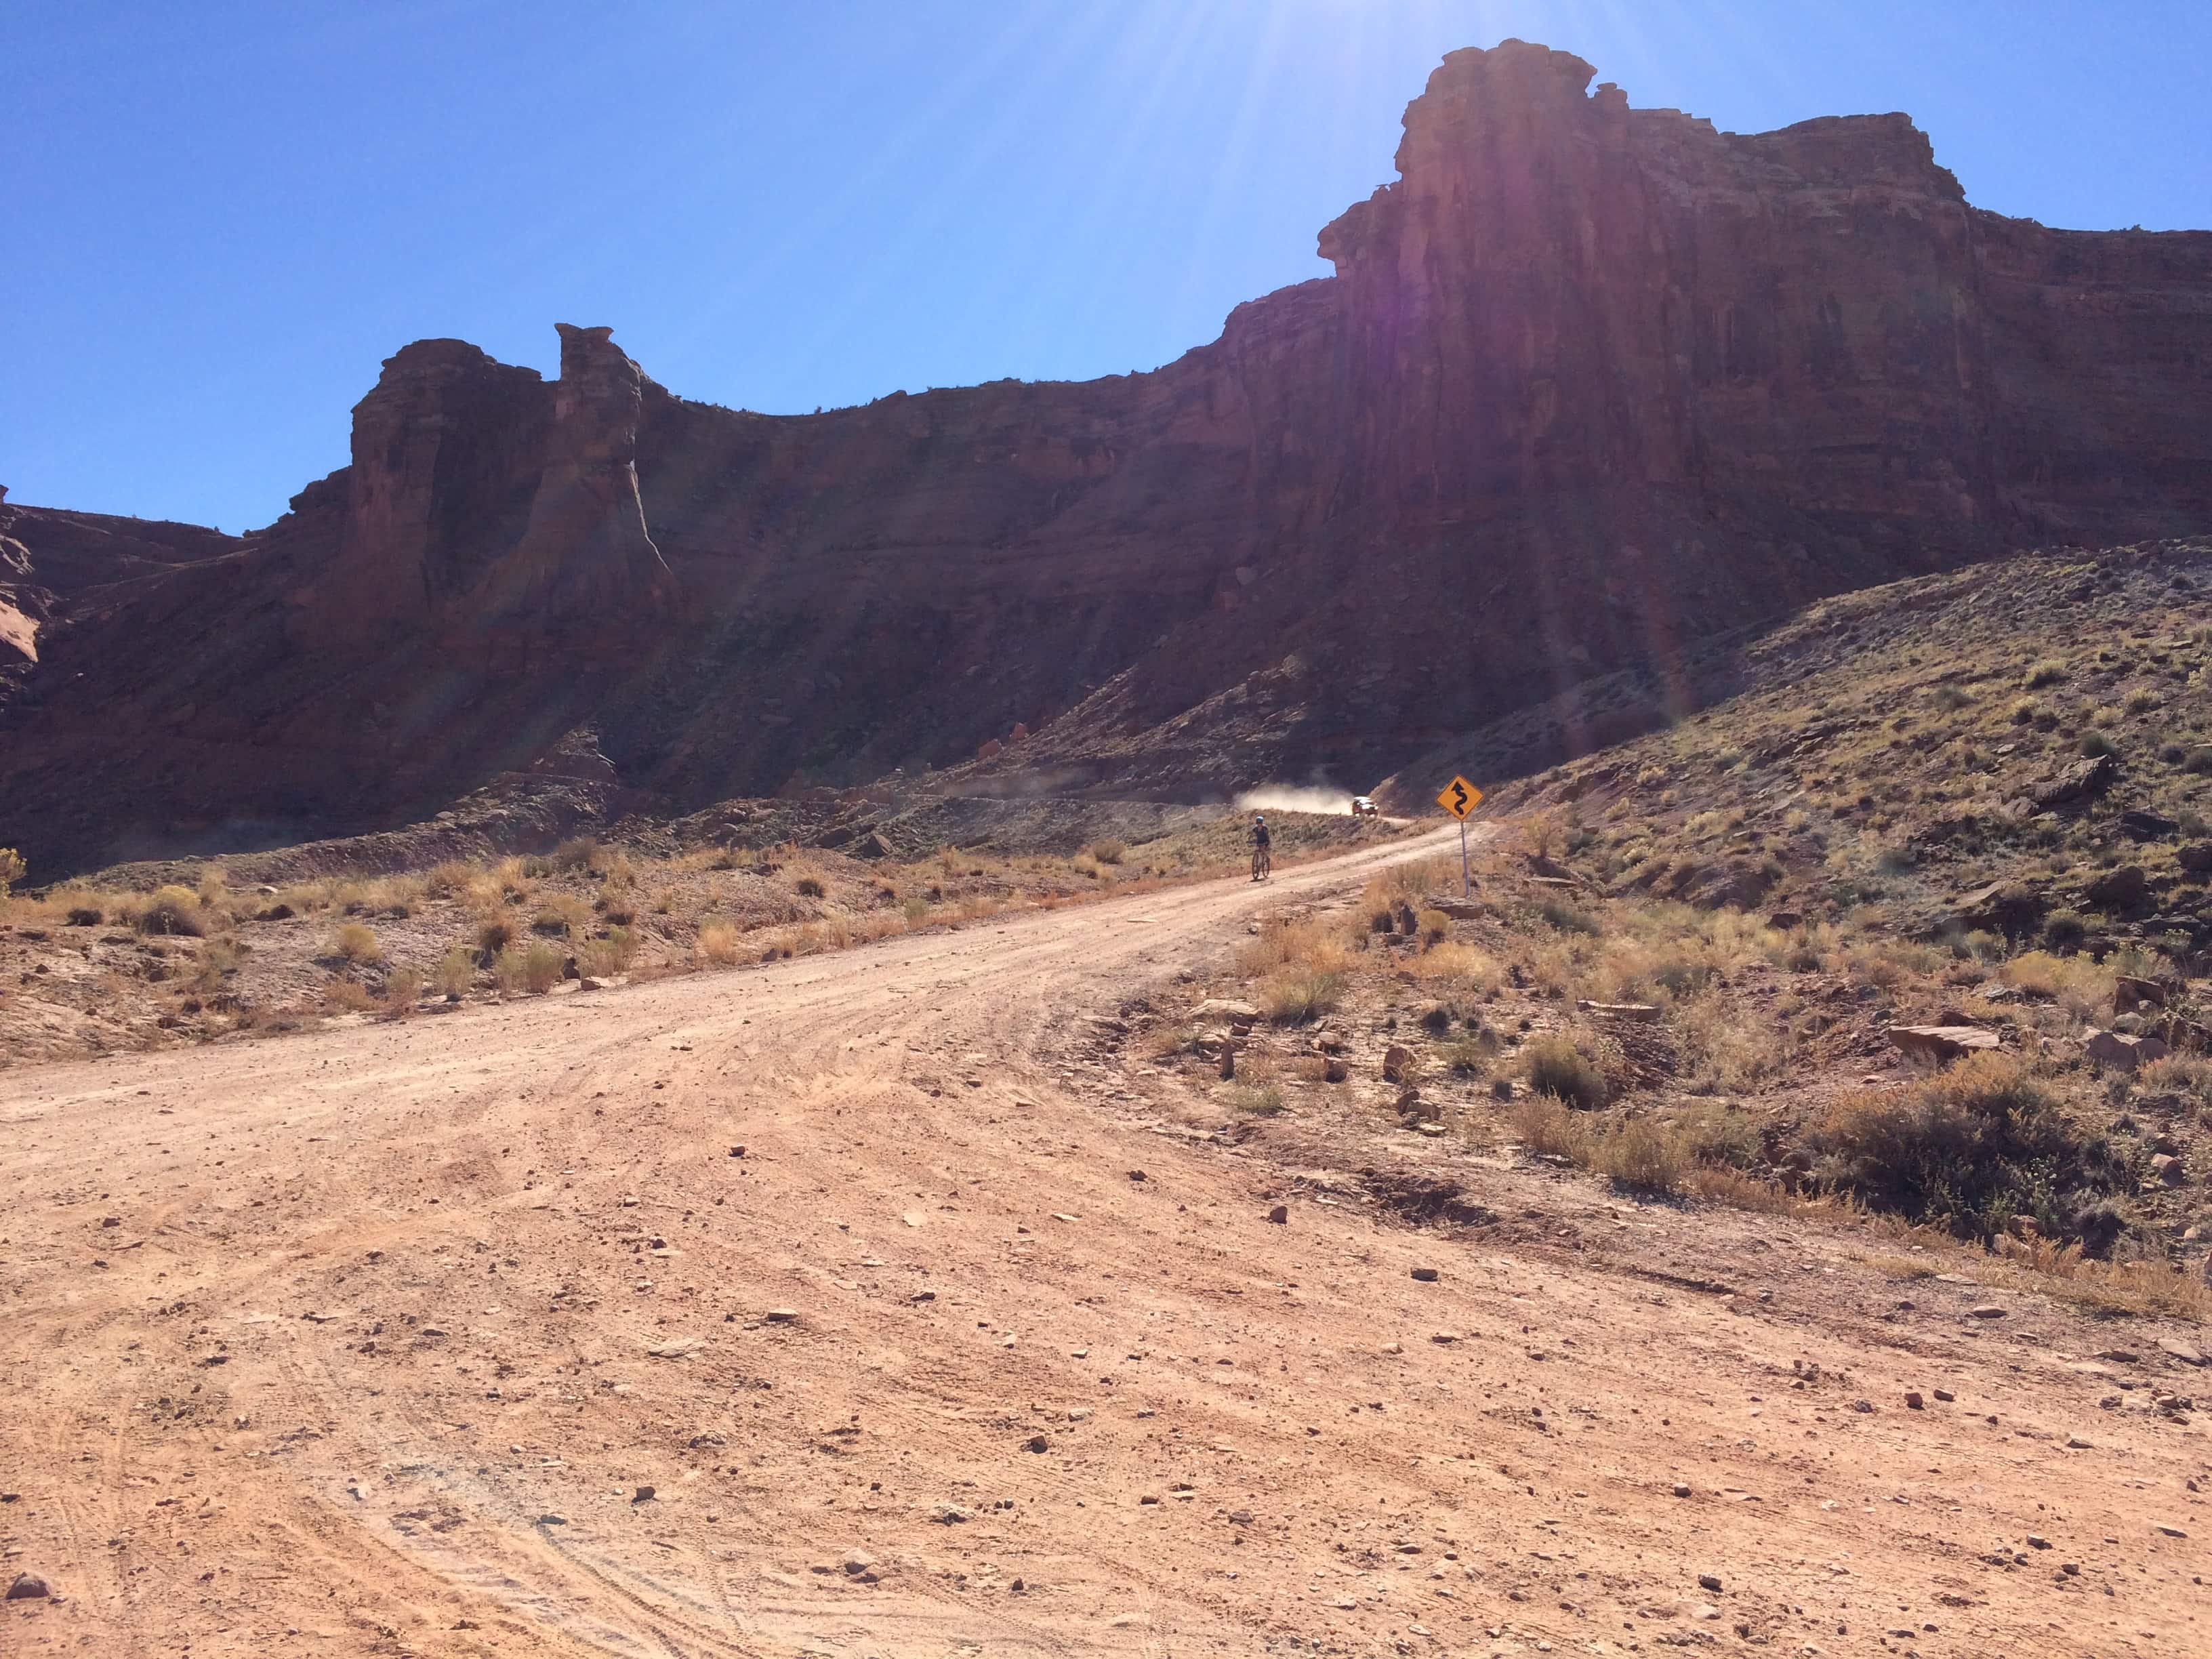 Biking down to Mineral Bottom on the White Rim Trail in Canyonlands National Park